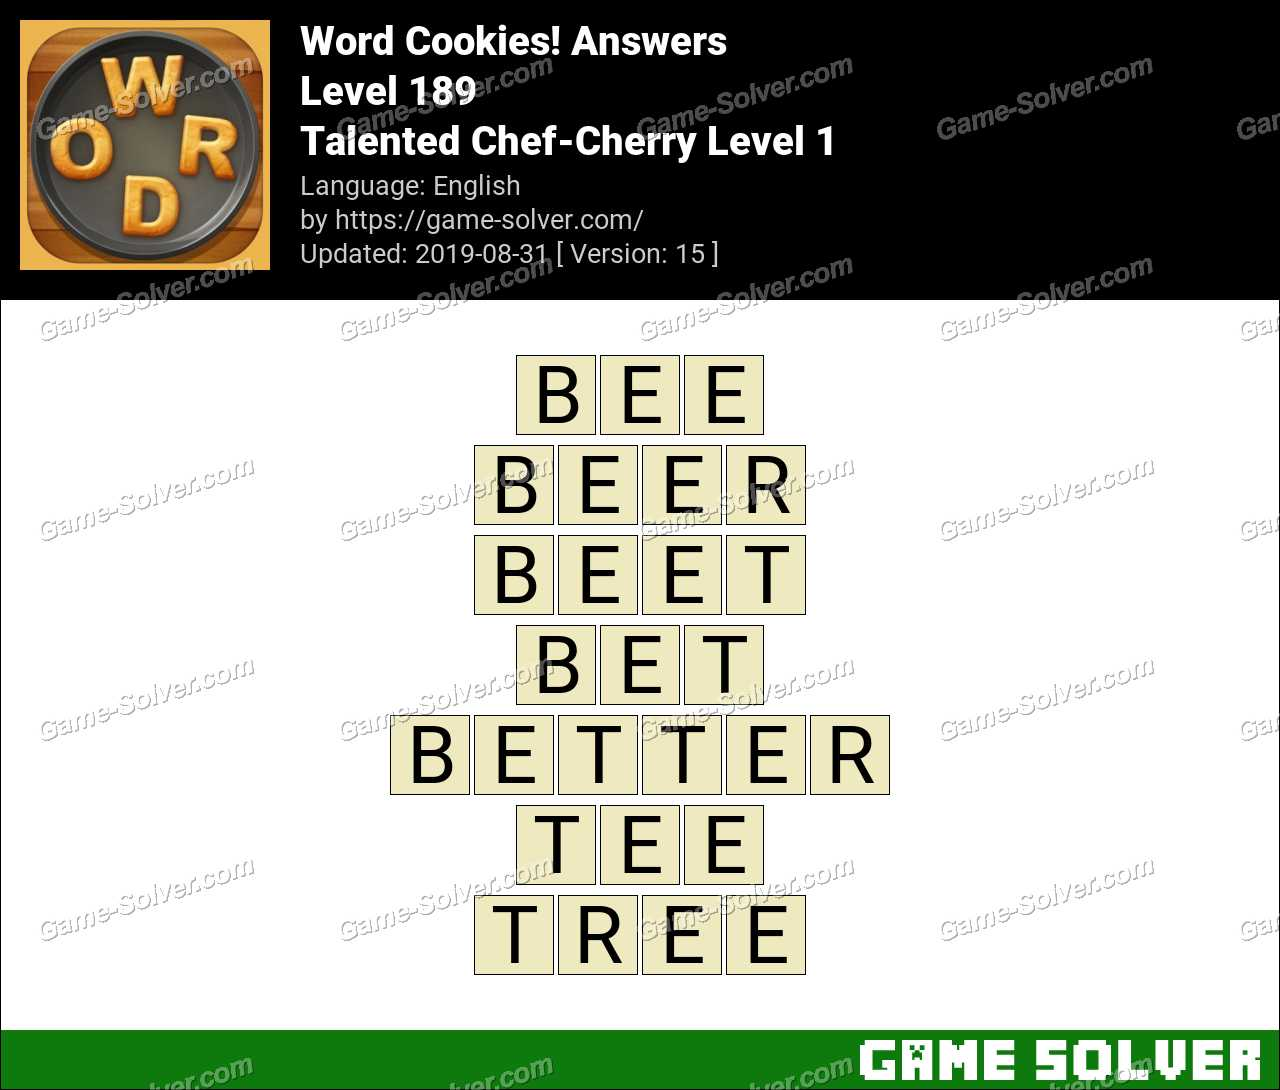 Word Cookies Talented Chef-Cherry Level 1 Answers